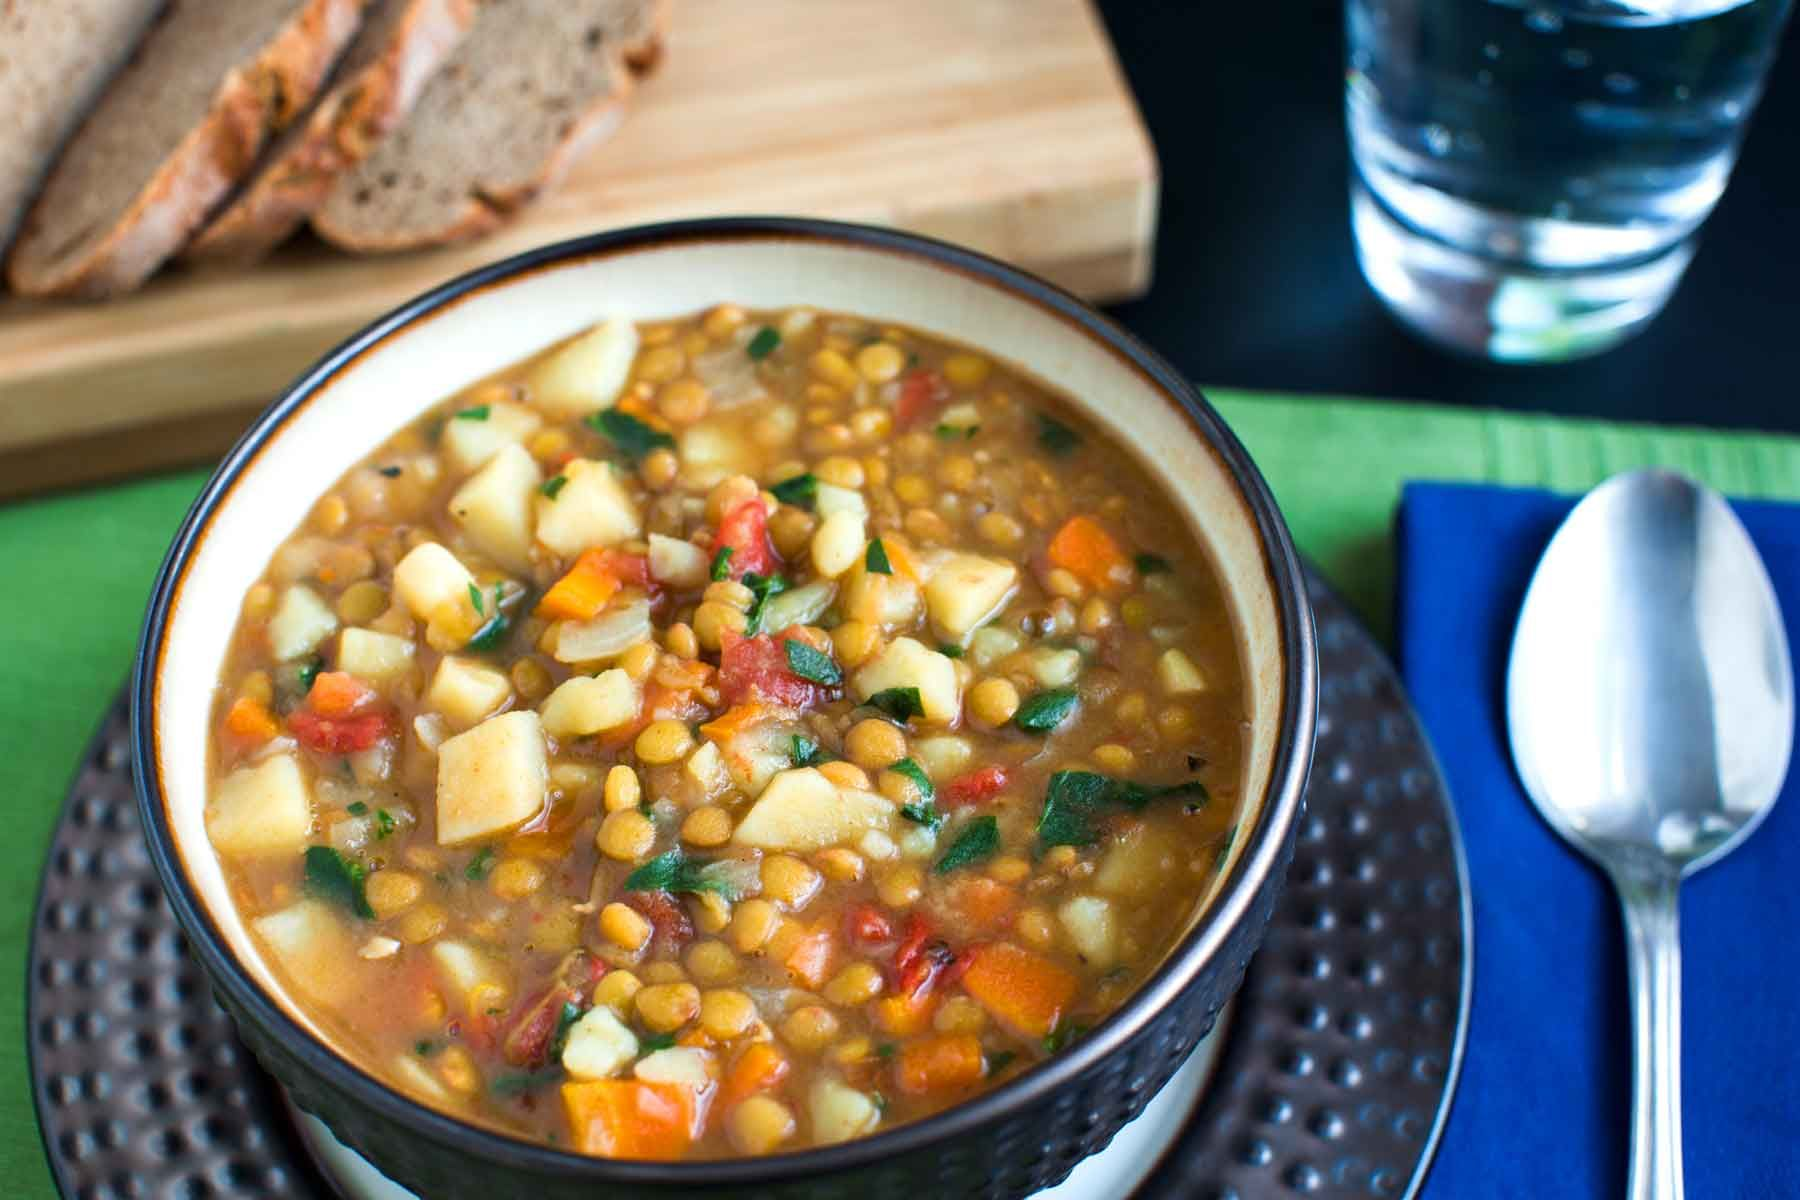 Lentil Vegetable Soup Recipe Lentil vegetable soup, Food